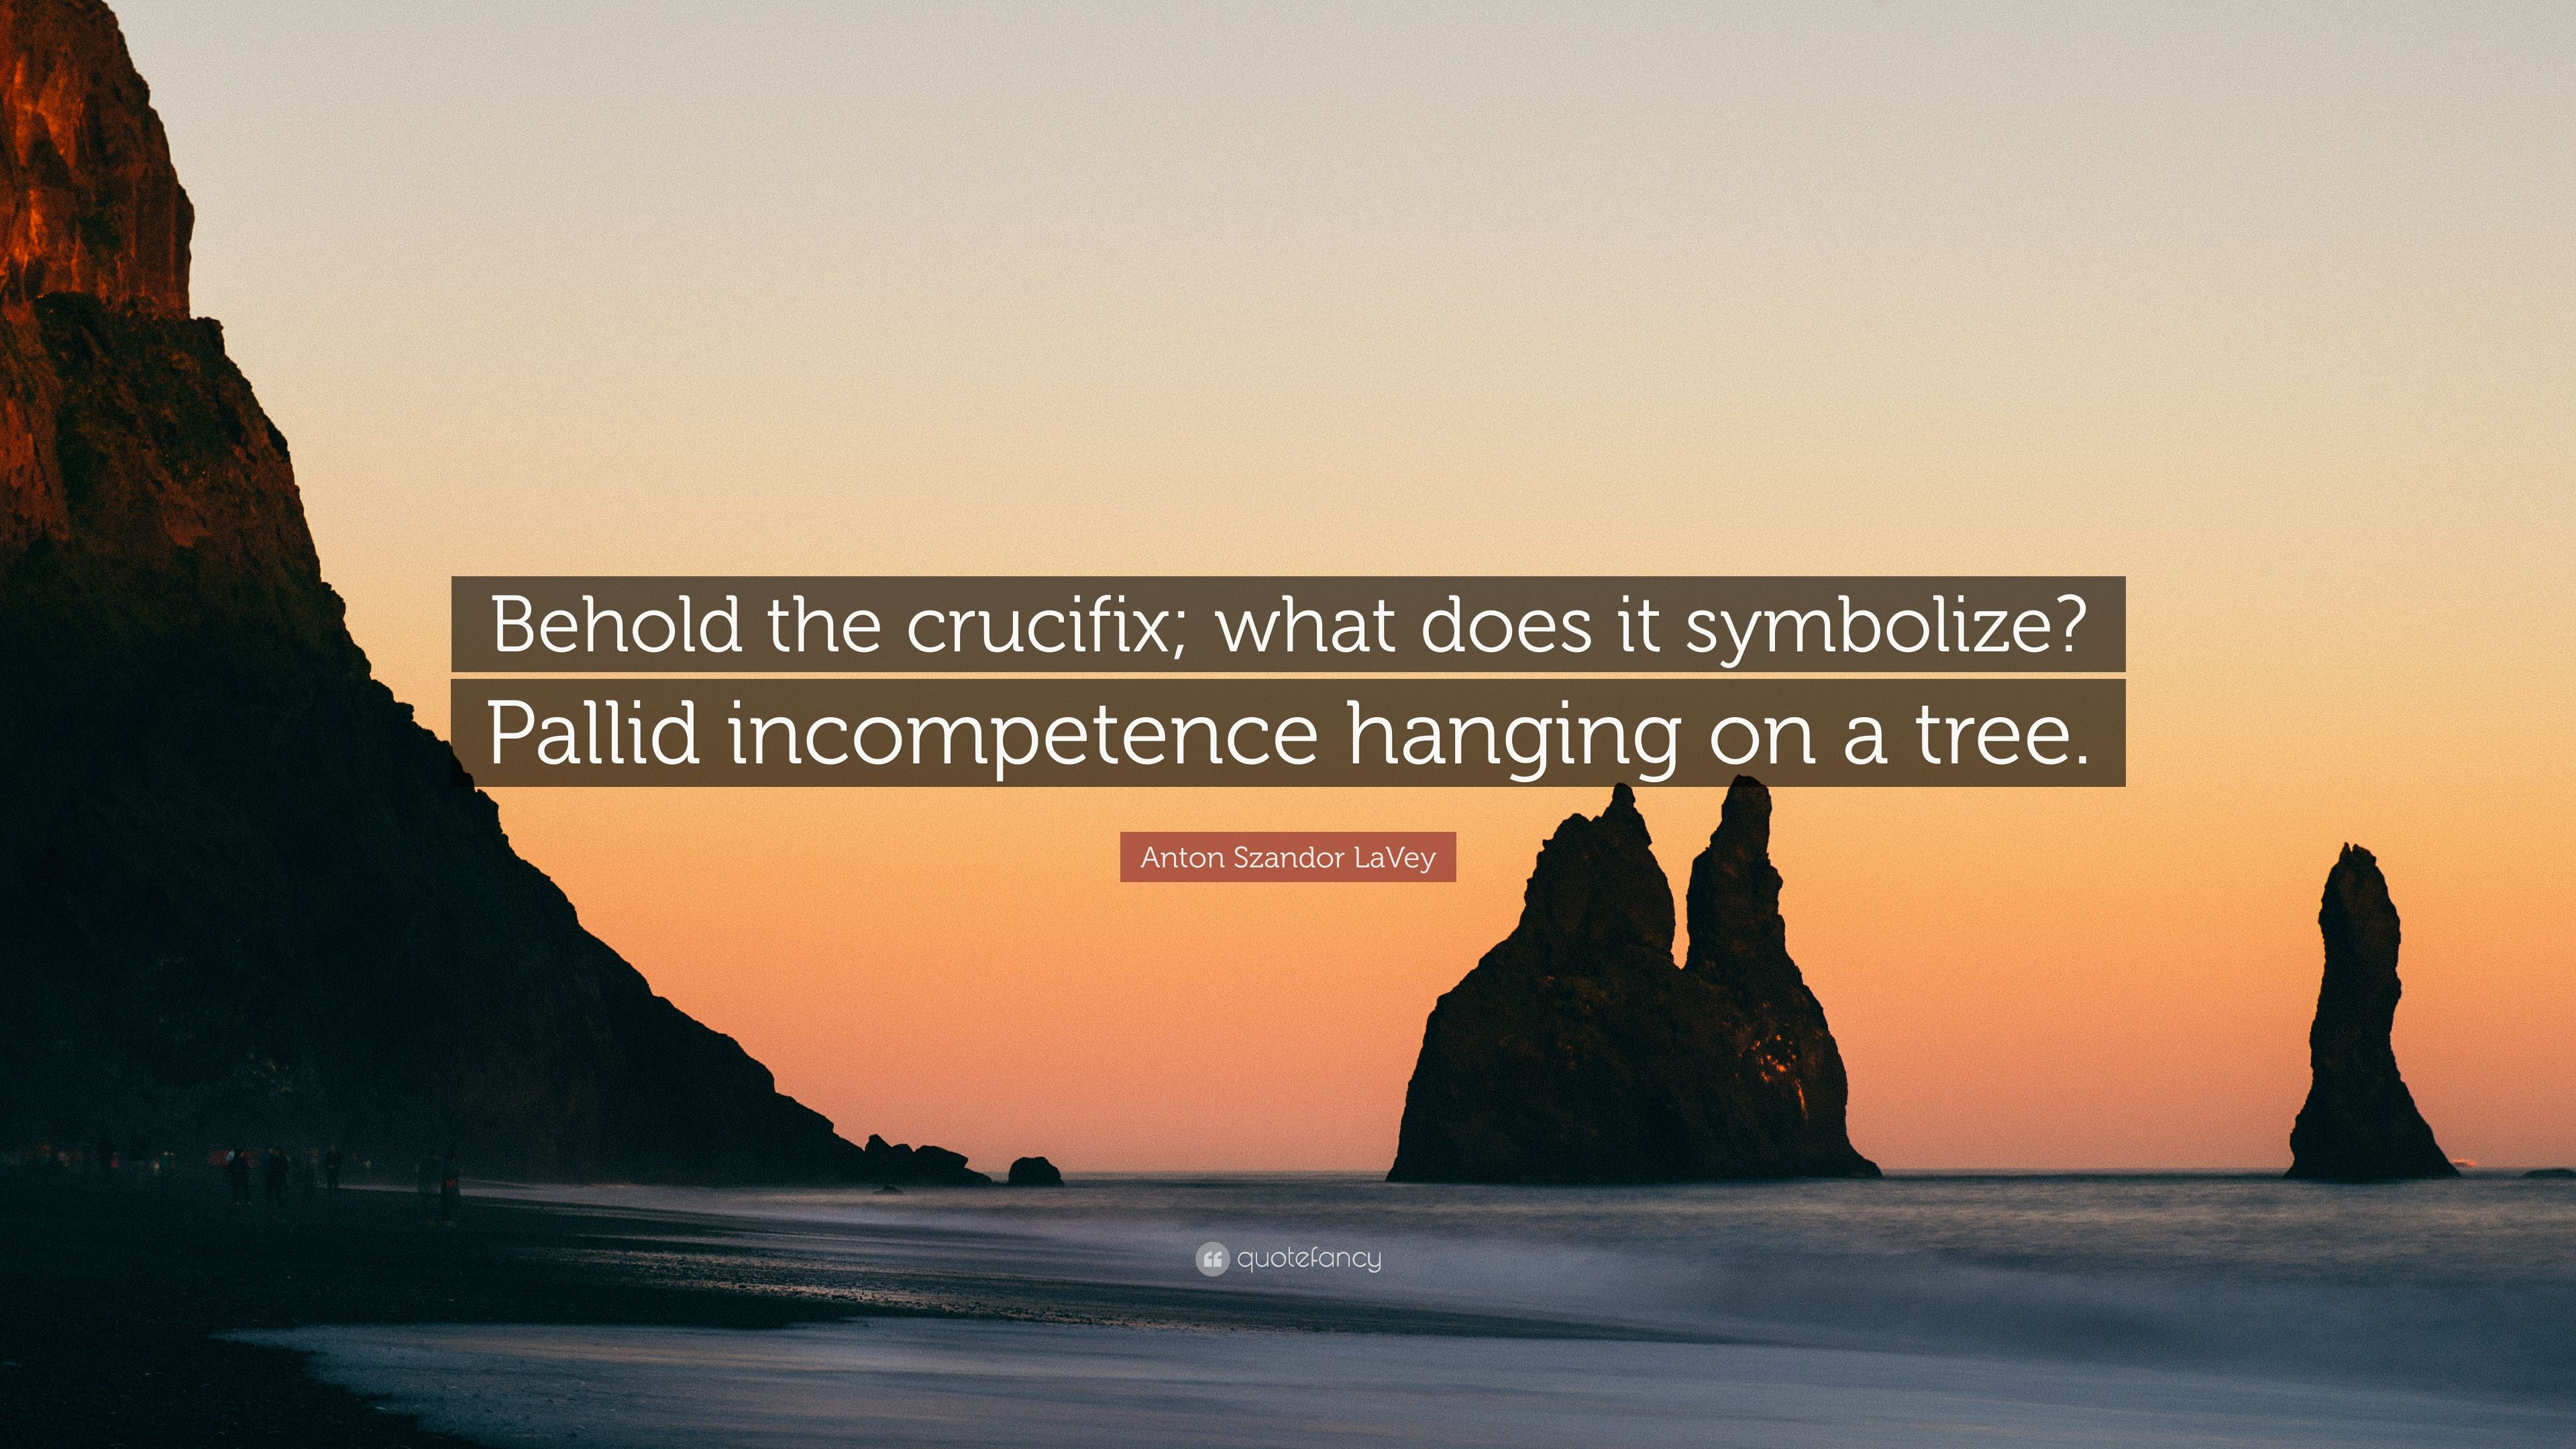 What does a crucifix symbolize gallery symbols and meanings anton szandor lavey quote behold the crucifix what does it anton szandor lavey quote behold the buycottarizona Images